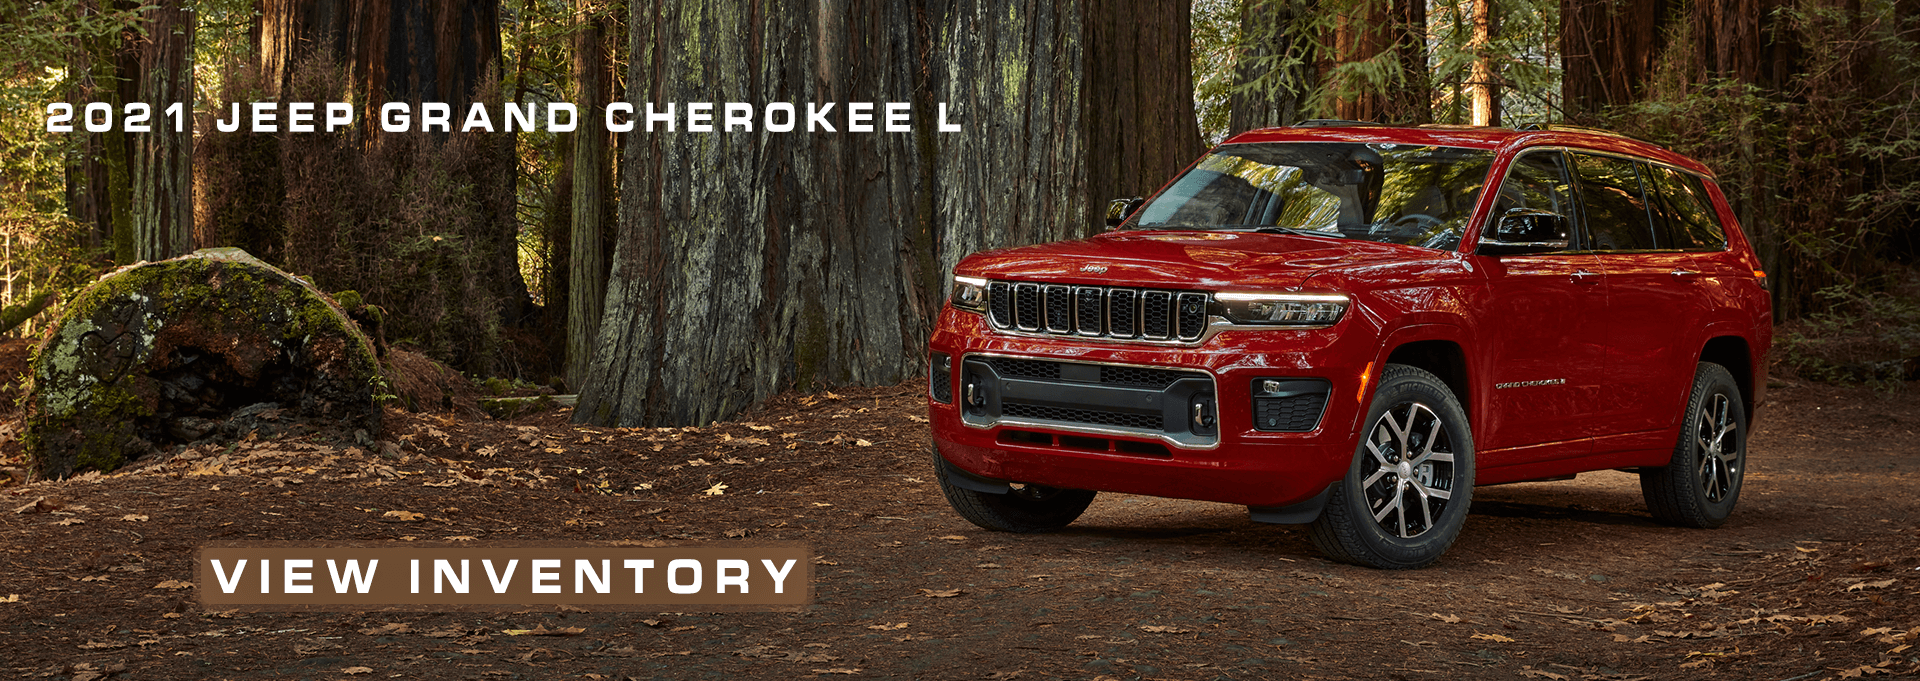 2021 Jeep Grand Cherokee L Red